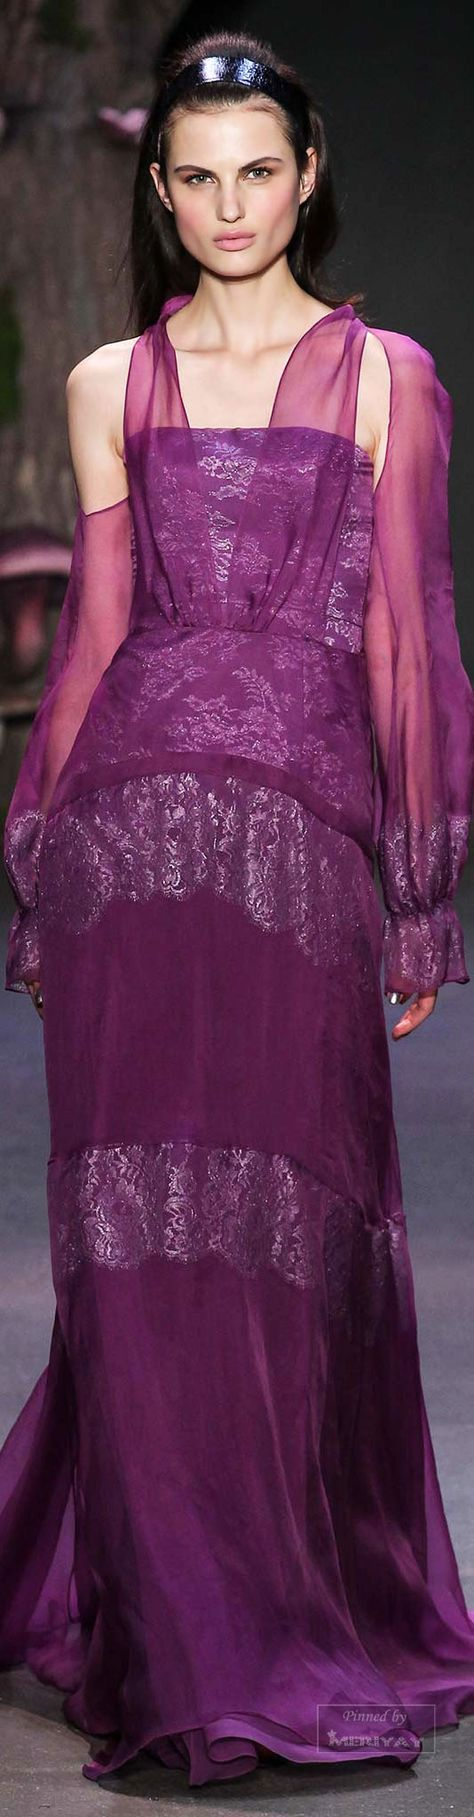 Glamour Gown / karen cox.  Honor.Fall 2015.